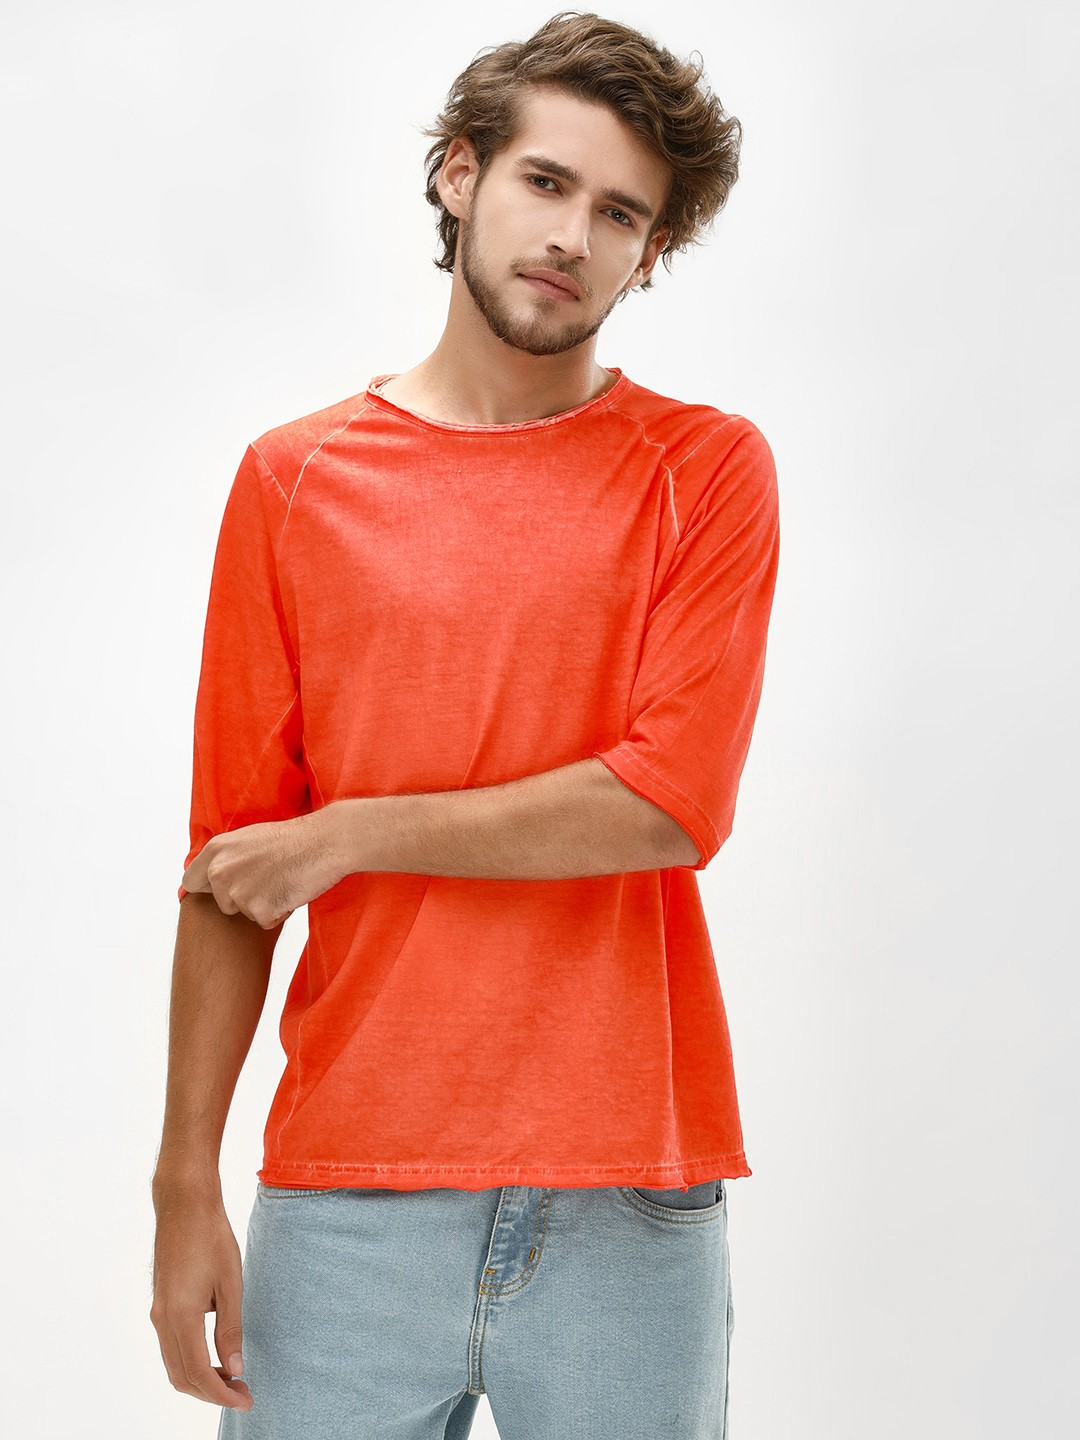 Blue Saint Orange T-Shirt With Raw Edges 1